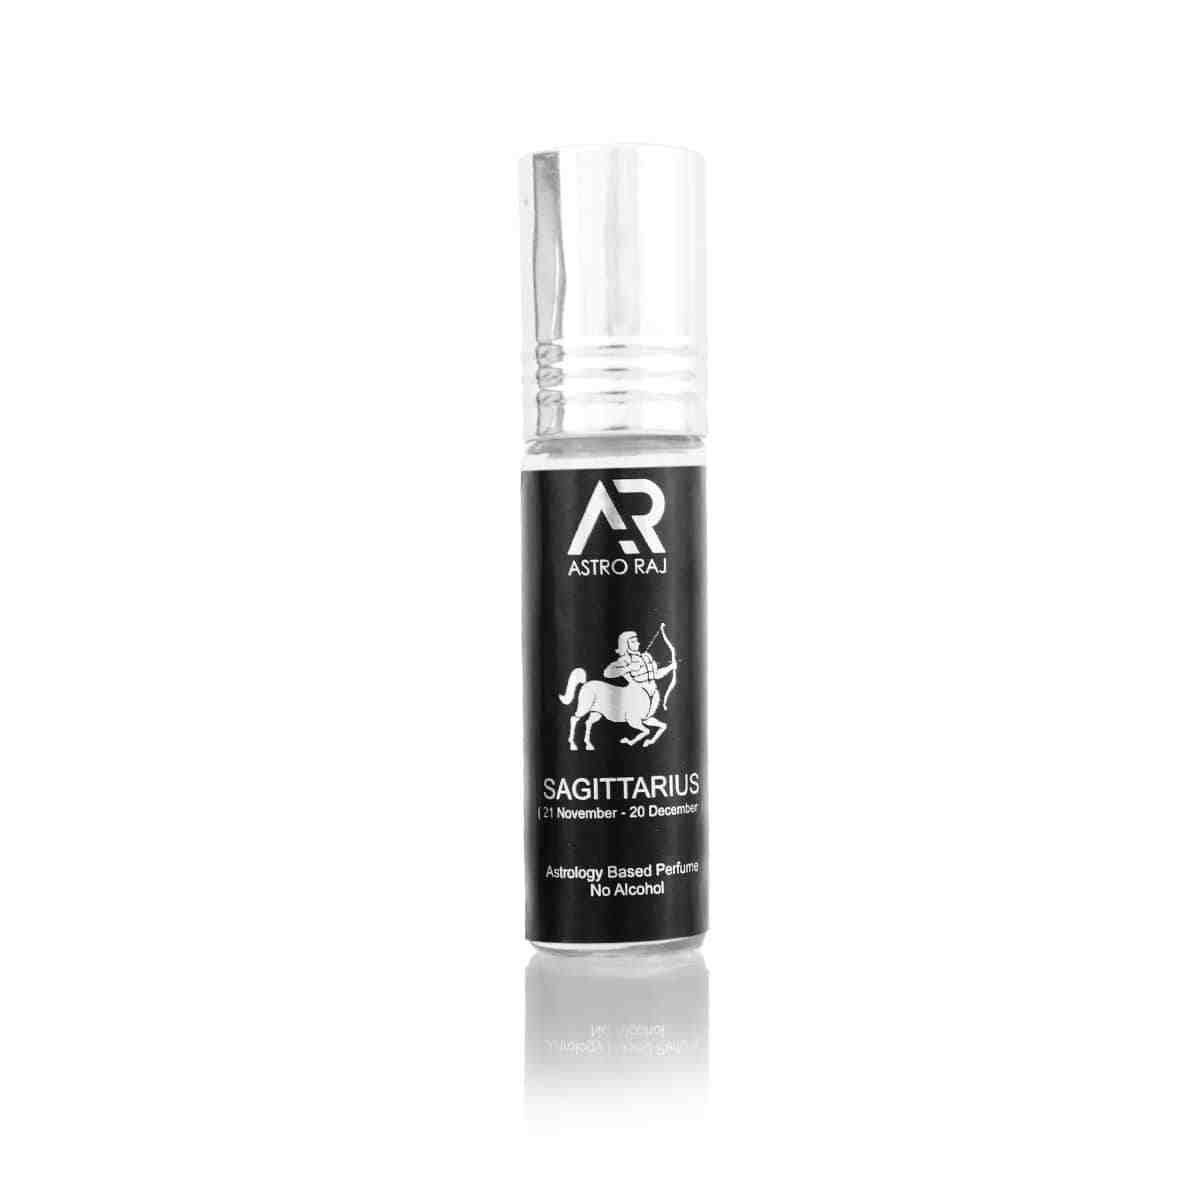 Sagittarius Zodiac Sign Roll-On Perfume